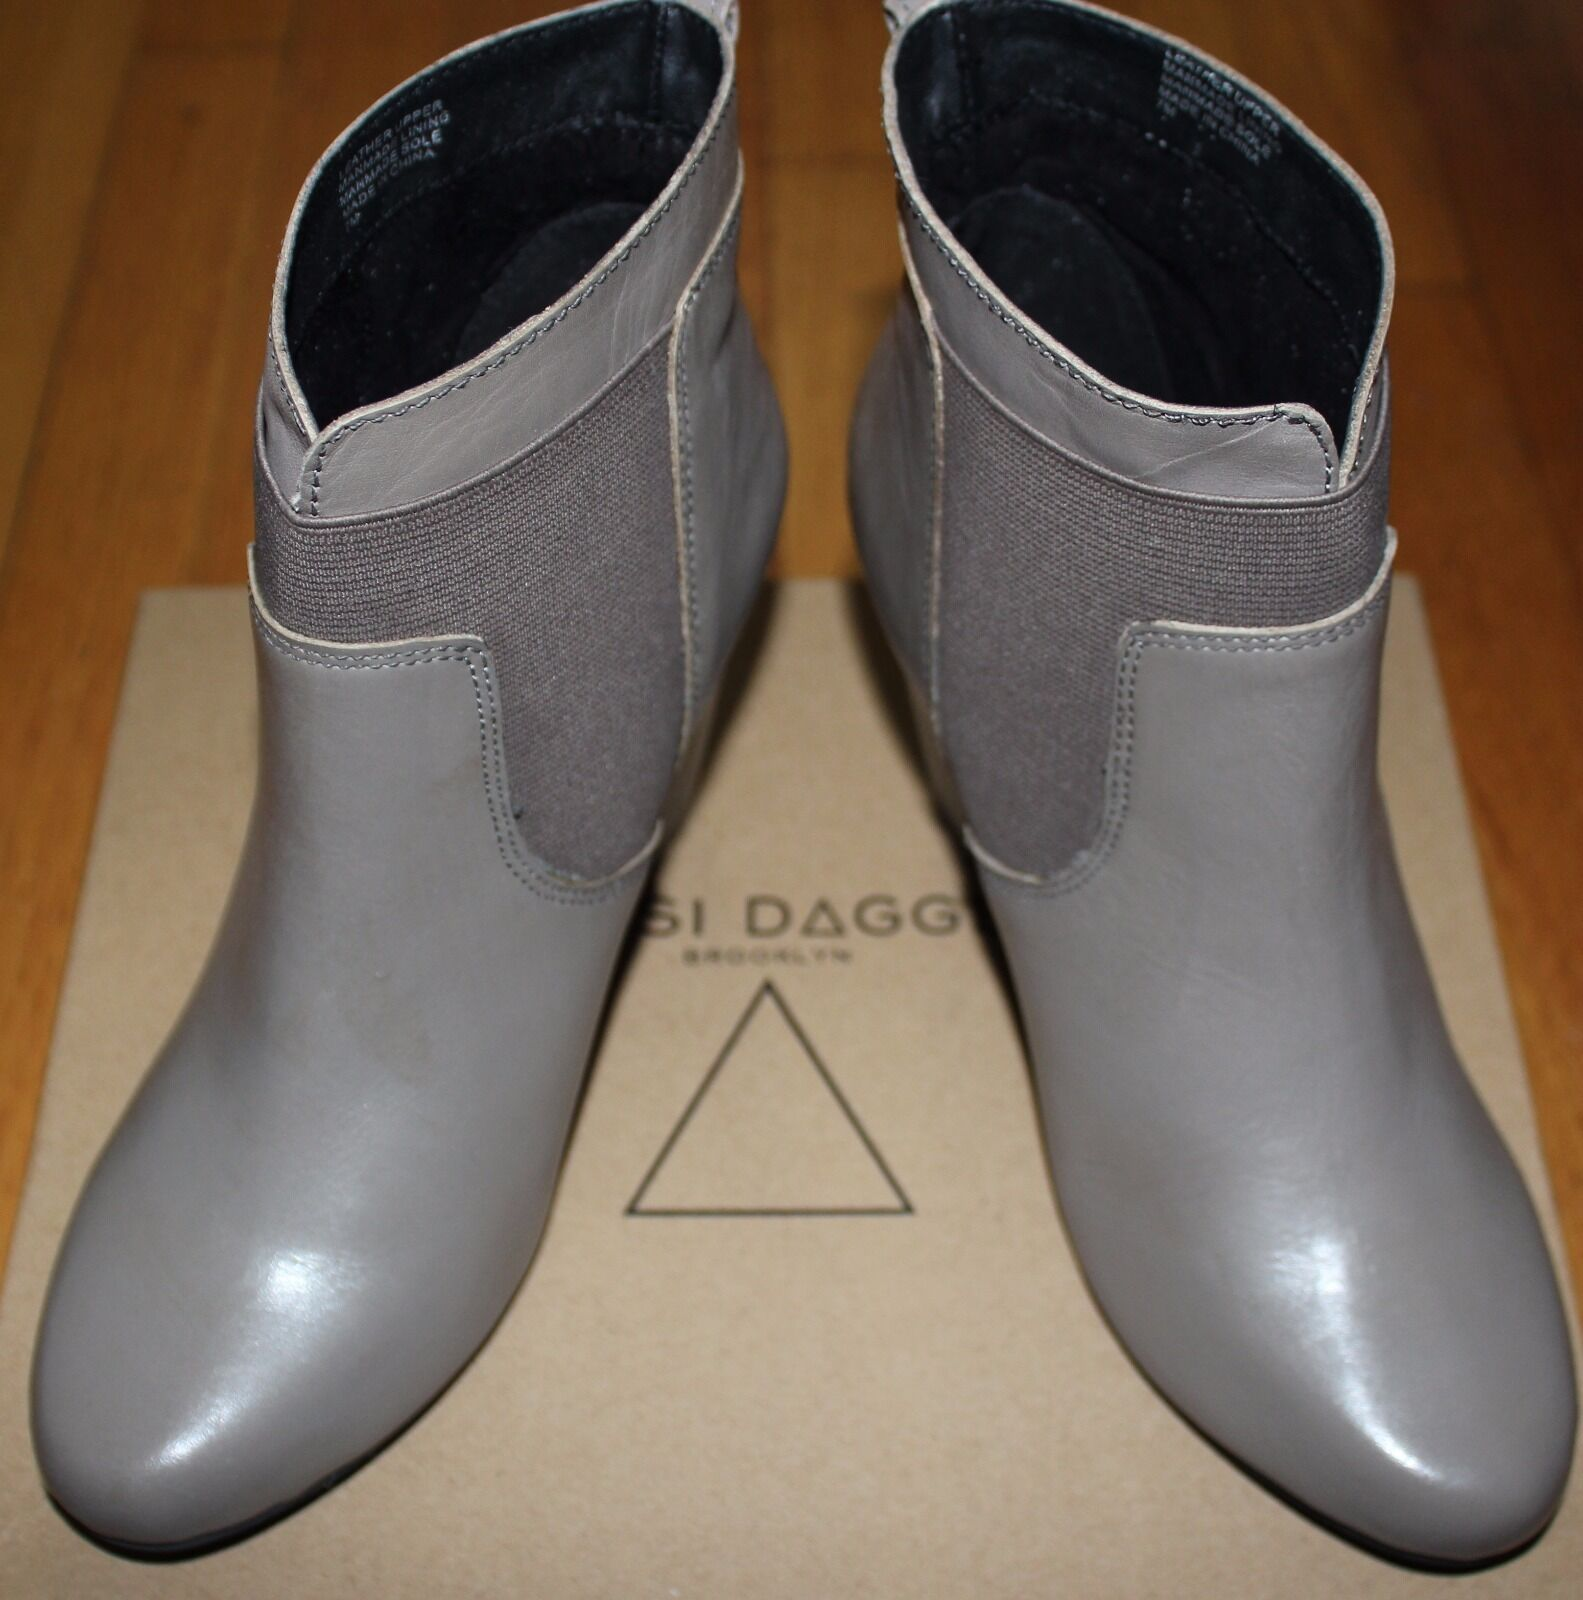 150 KELSI DAGGER DESERT GREY MARIE BABY CALF ELASTIC LEATHER BOOT SZ 7M